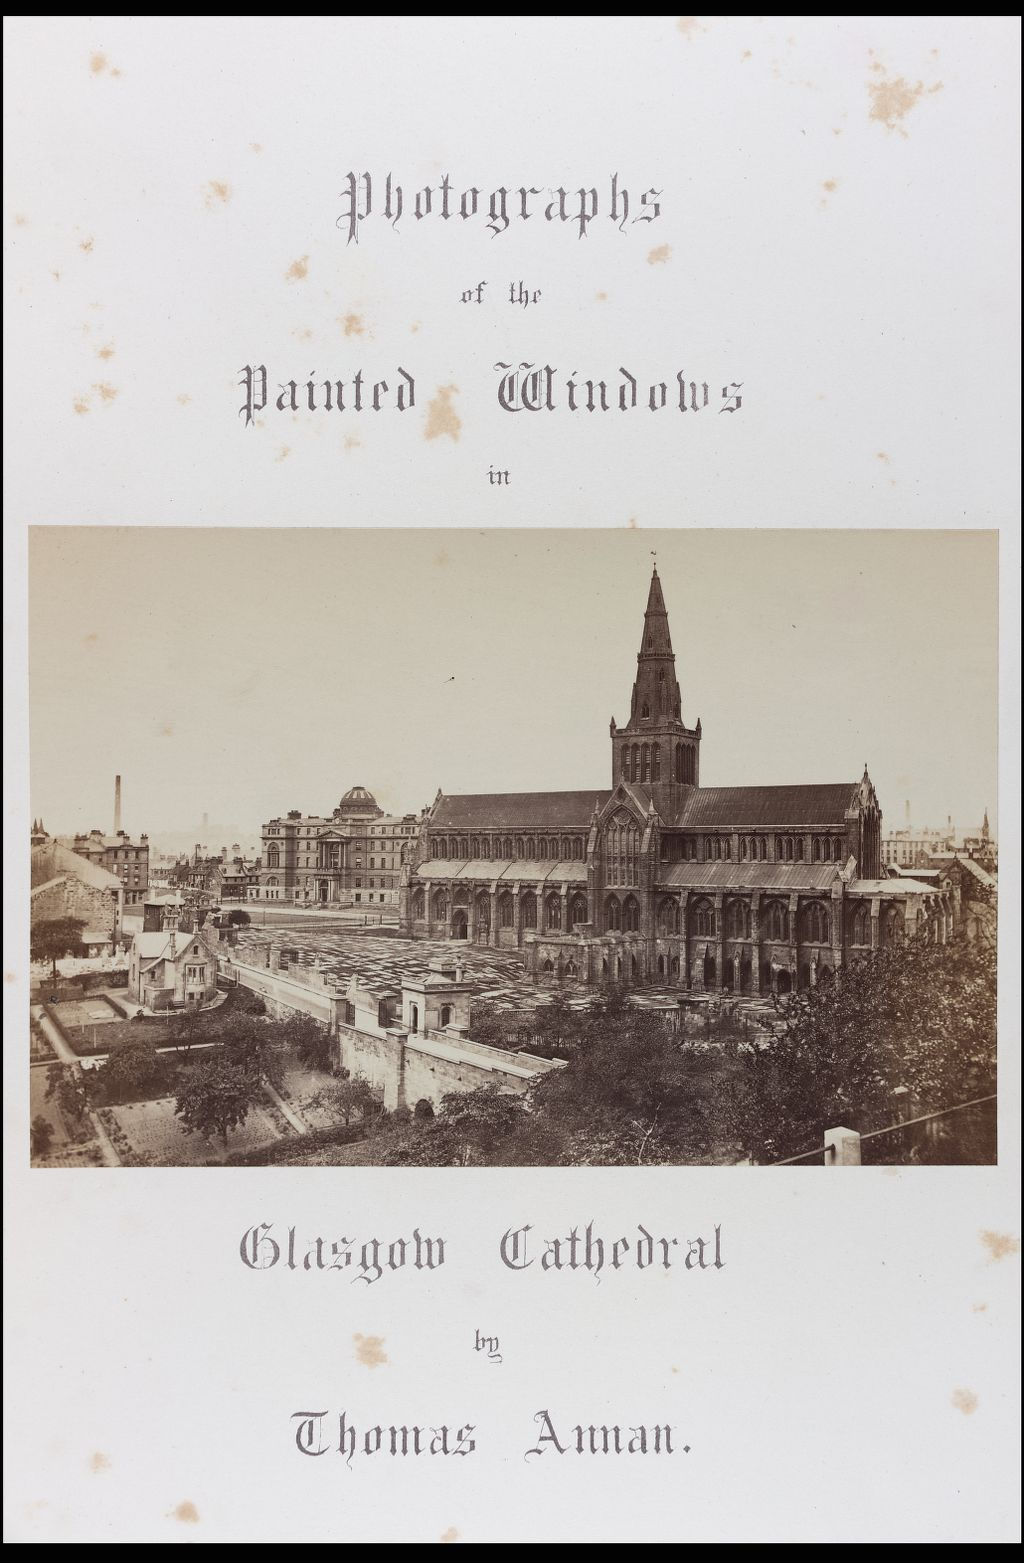 The painted windows of Glasgow Cathedral : a series of forty-three photographs, taken by Thomas Annan.